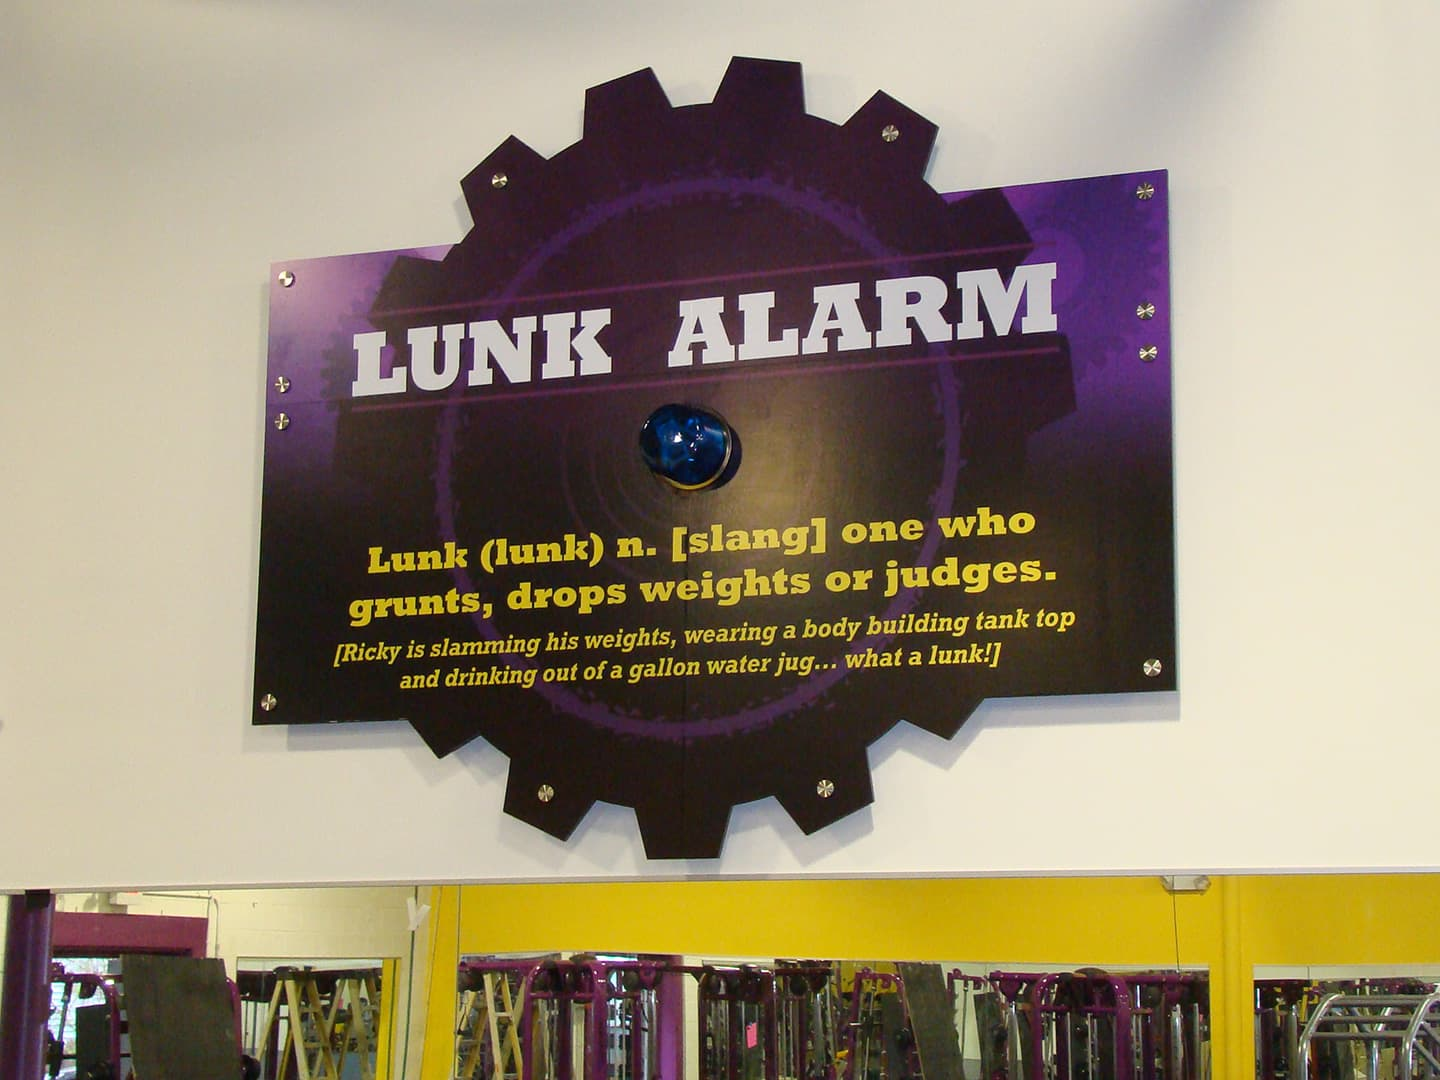 Planet Fitness - interior signage